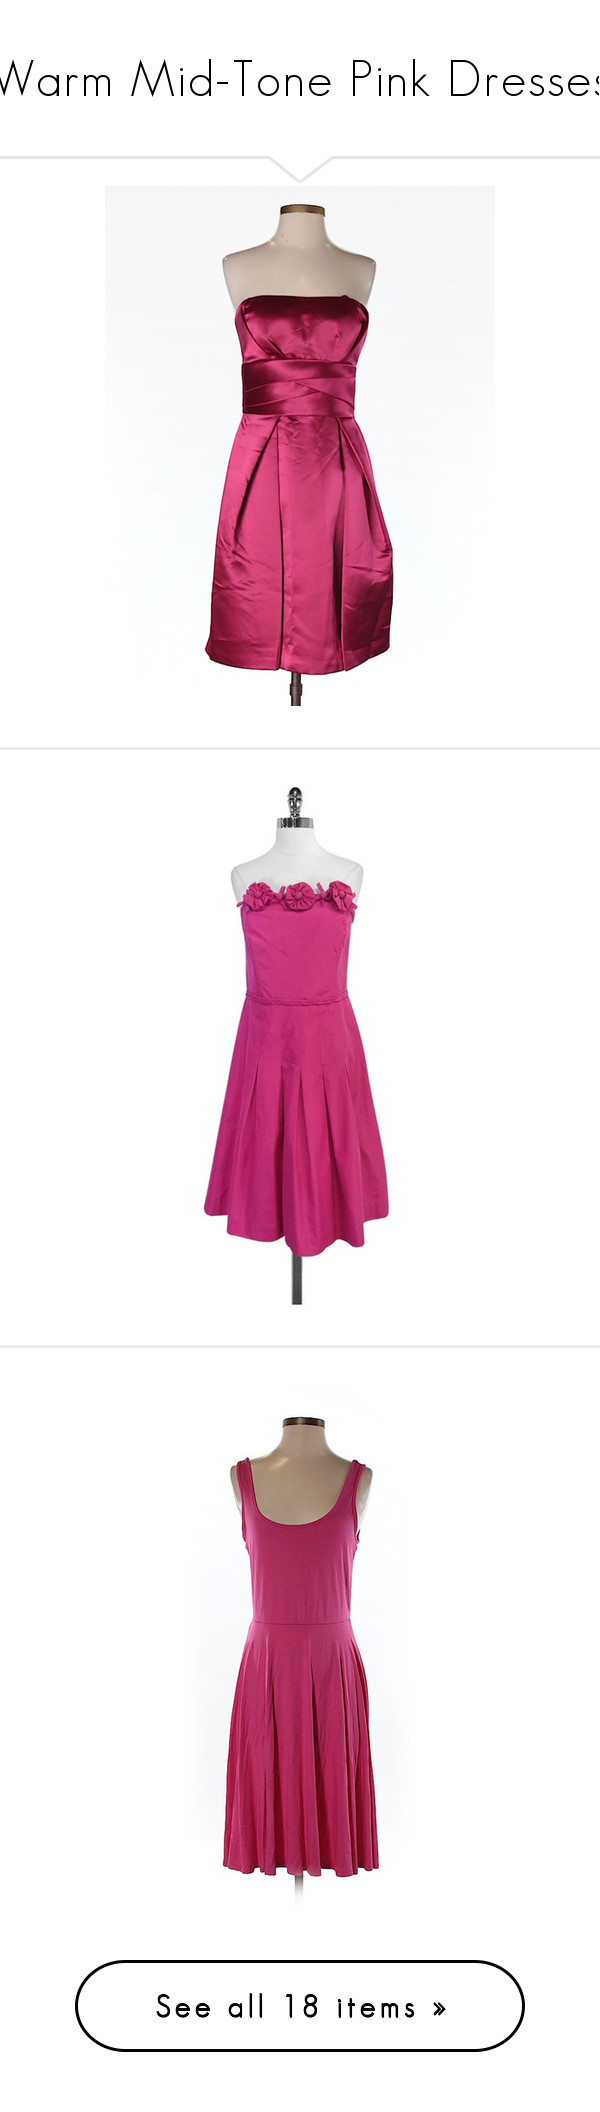 """""""Warm Mid-Tone Pink Dresses"""" by tegan-b-riley on Polyvore featuring dresses, pink, max and cleo, white cocktail dress, pink cocktail dress, white dresses, pink dress, lilly pulitzer dresses, purple dresses and fuchsia pink dress"""